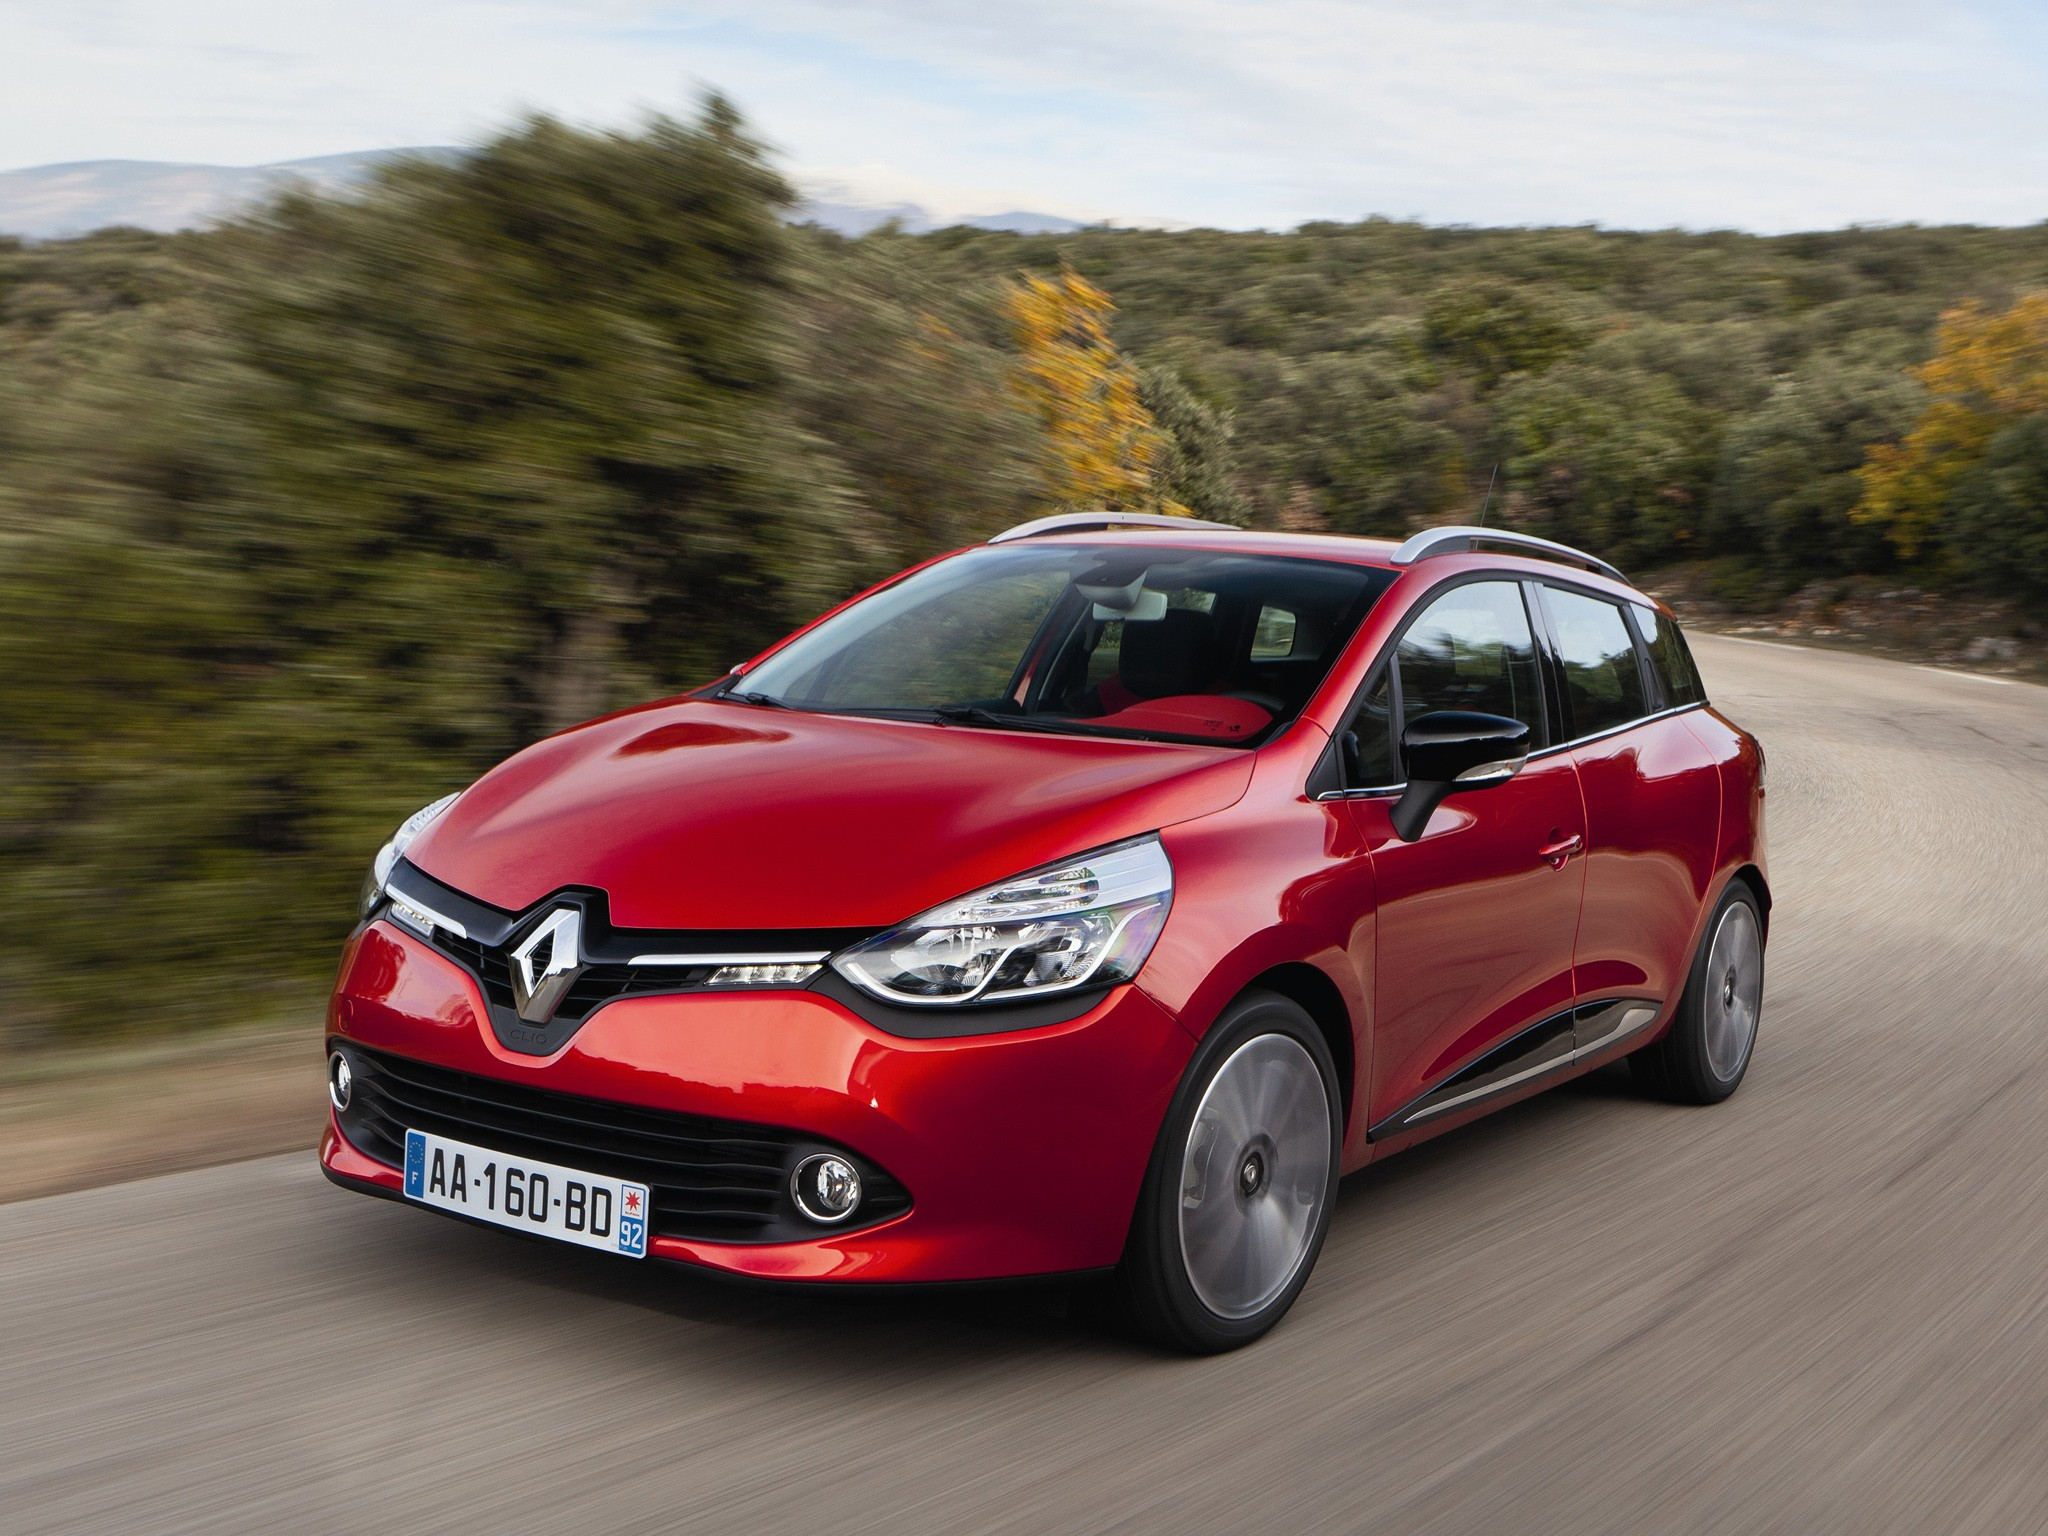 renault clio estate specs 2013 2014 2015 2016 autoevolution. Black Bedroom Furniture Sets. Home Design Ideas